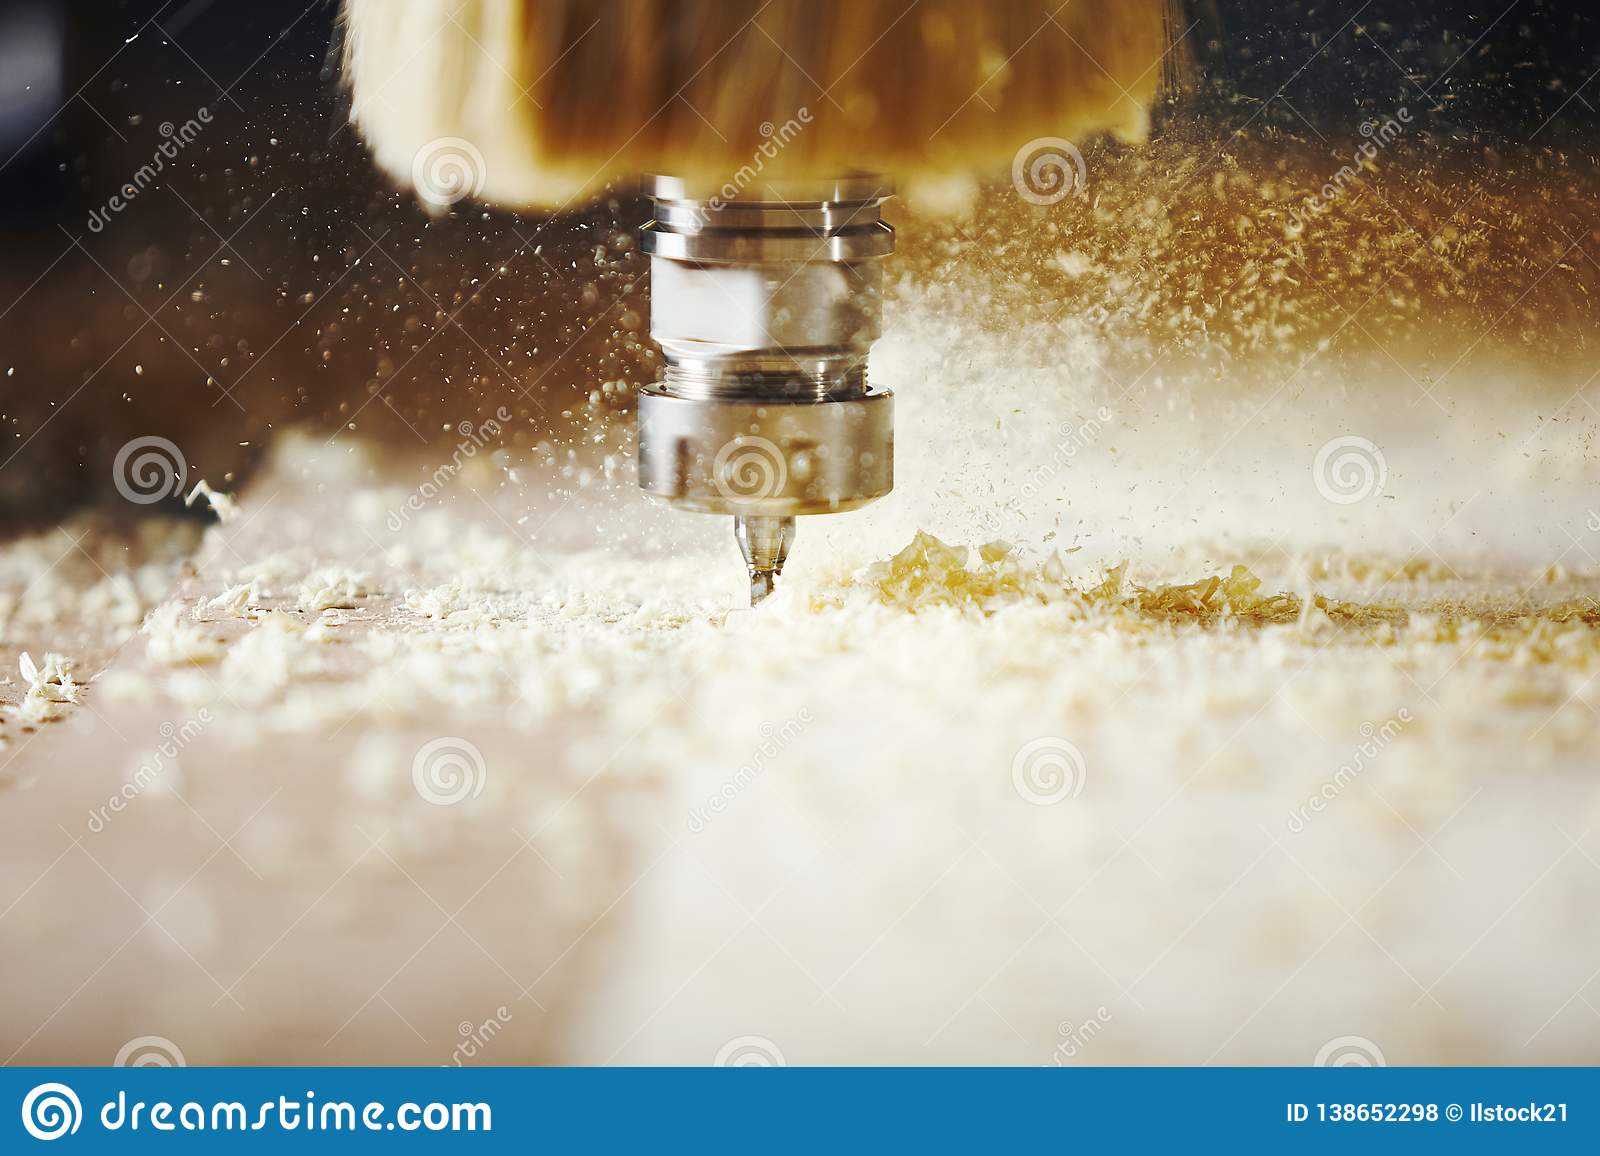 Cnc Machine Working Cutting Wood Woodwork Industry Stock Photo